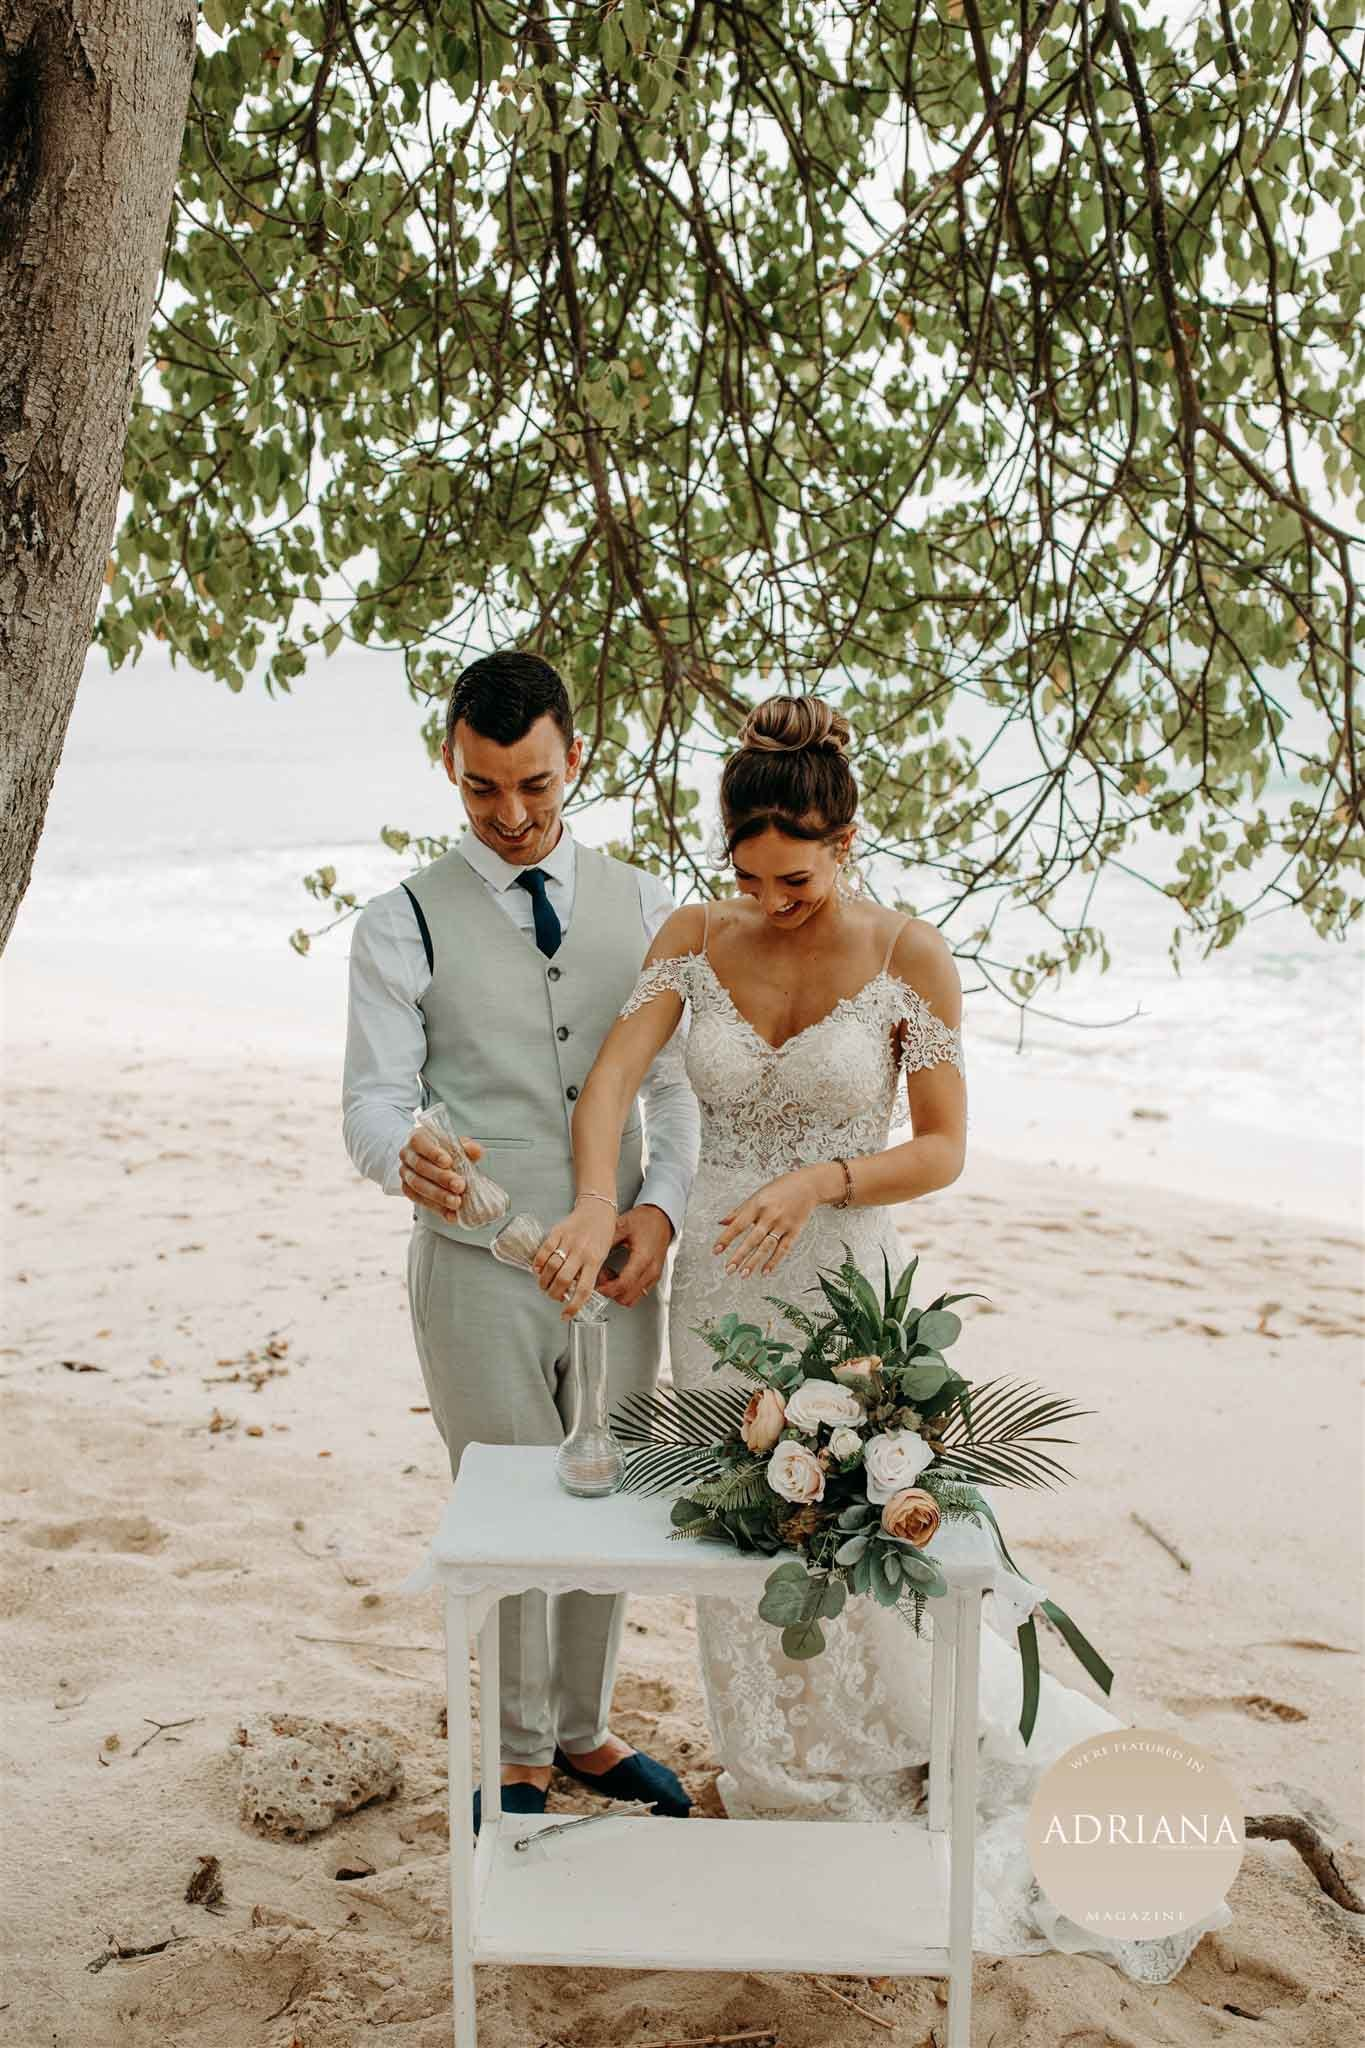 Chloe & James's Bohemian Elopement in Barbados, Luxury destination weddings as seen in ADRIANA Magazine (Issue IV), Photography by Amber Dawn Photography